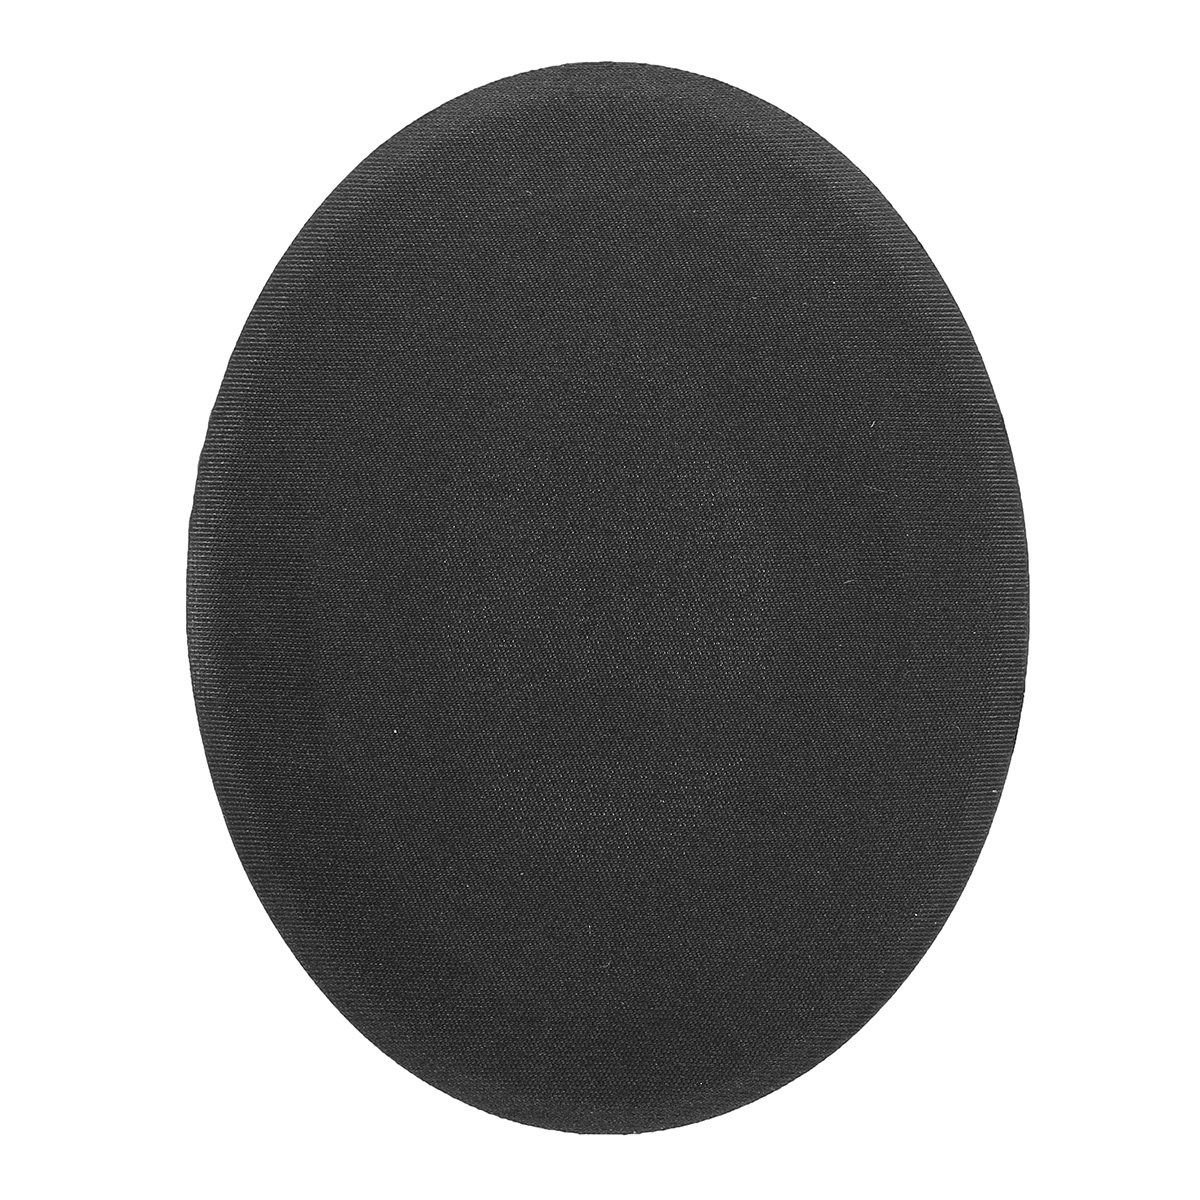 Replacement Cushion Earpads Cover For Sennheiser HD 418 428 438 448 419 429 439 449 Headphone